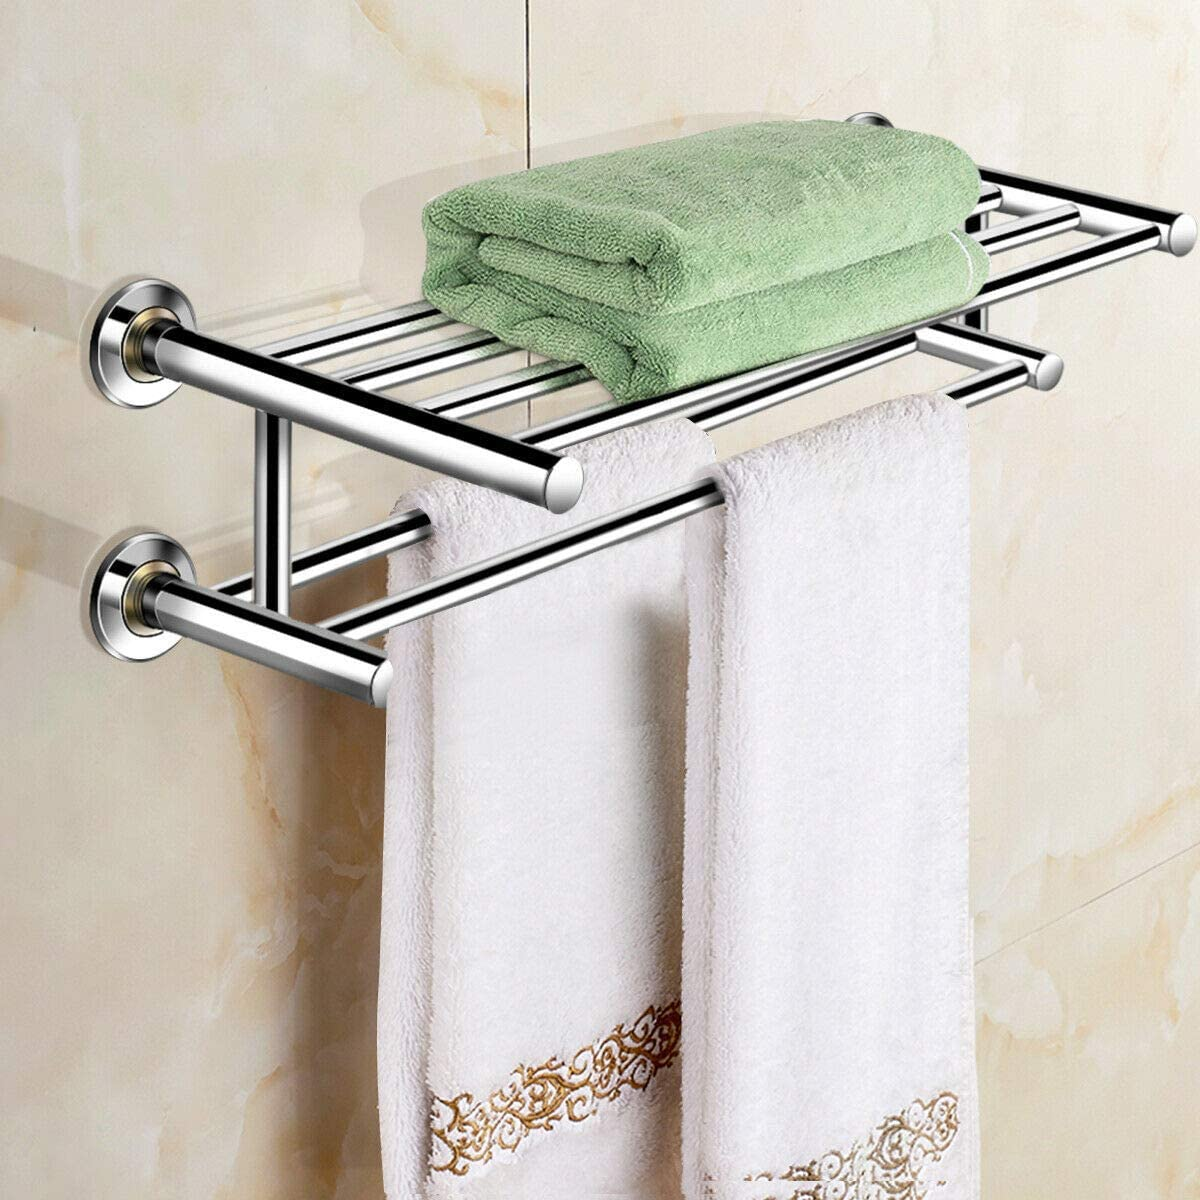 Wall Mounted Bathroom Shelf Stainless Steel Towel Rack Storage Holder Organizer